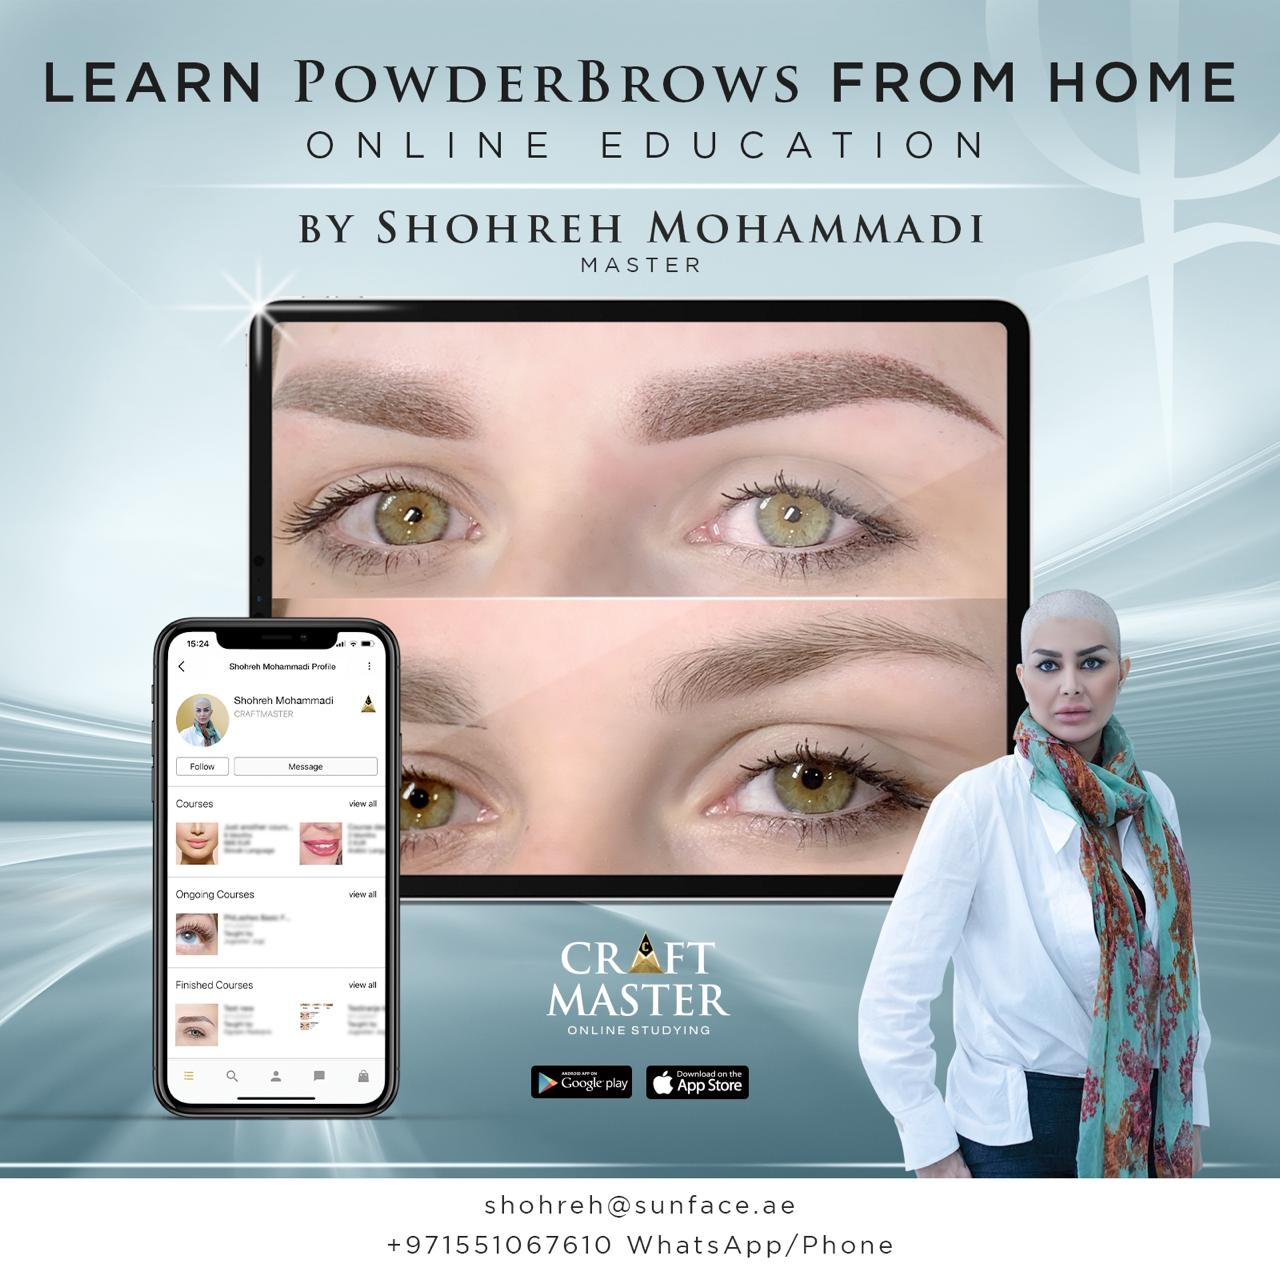 Powder Brows Online Course